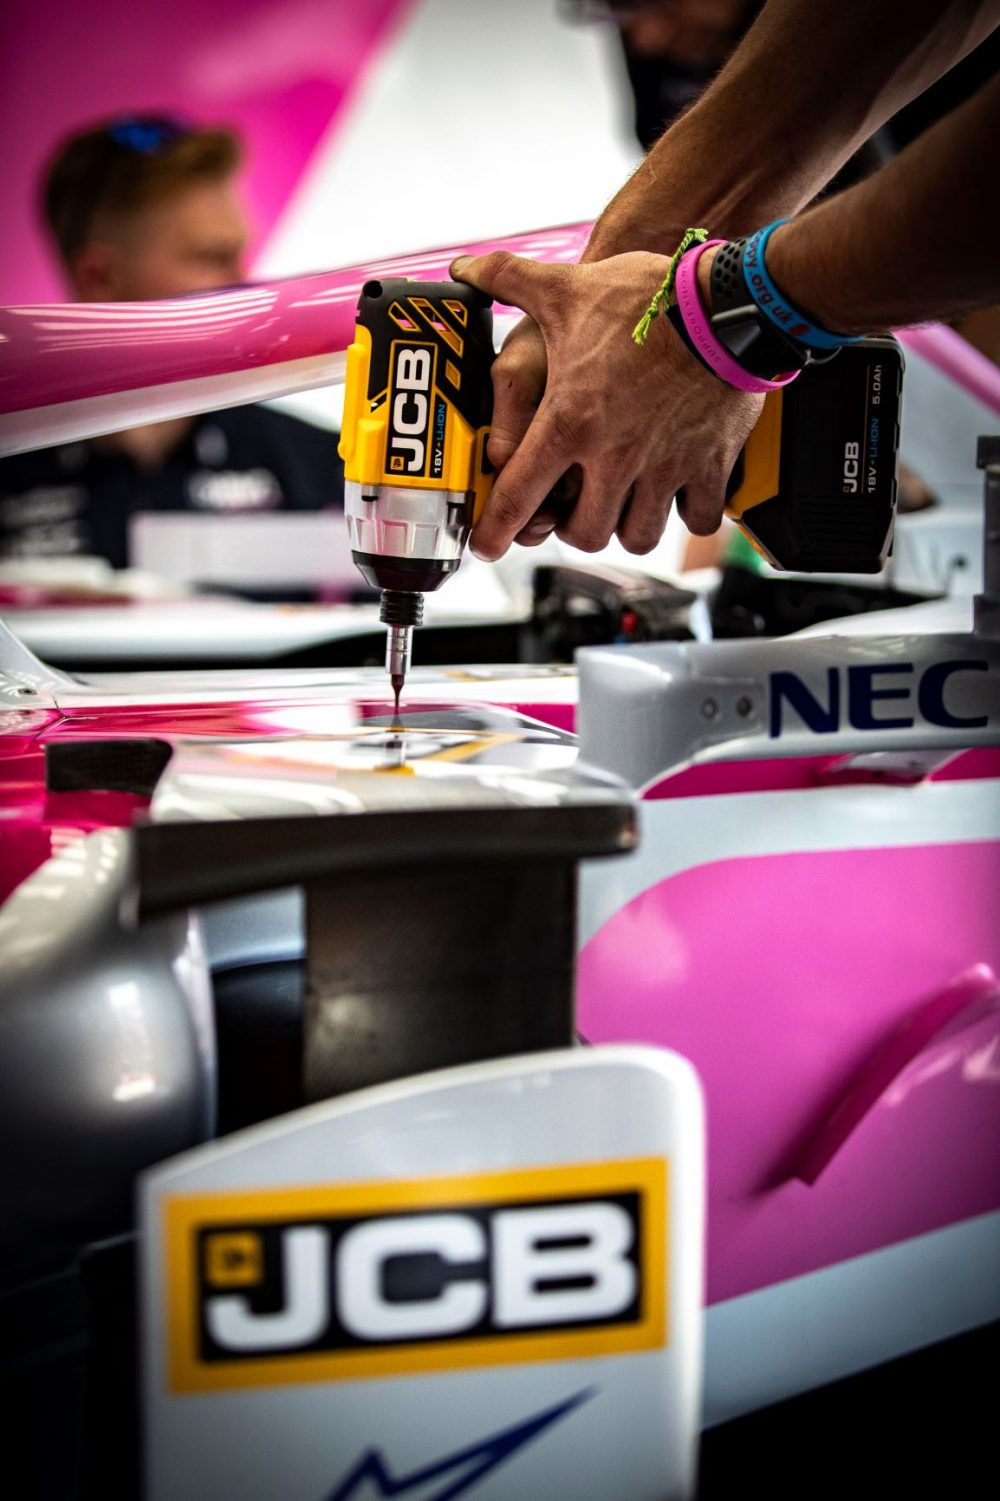 A SportPesa Racing Point F1 team engineer puts the new JCB tools to the test